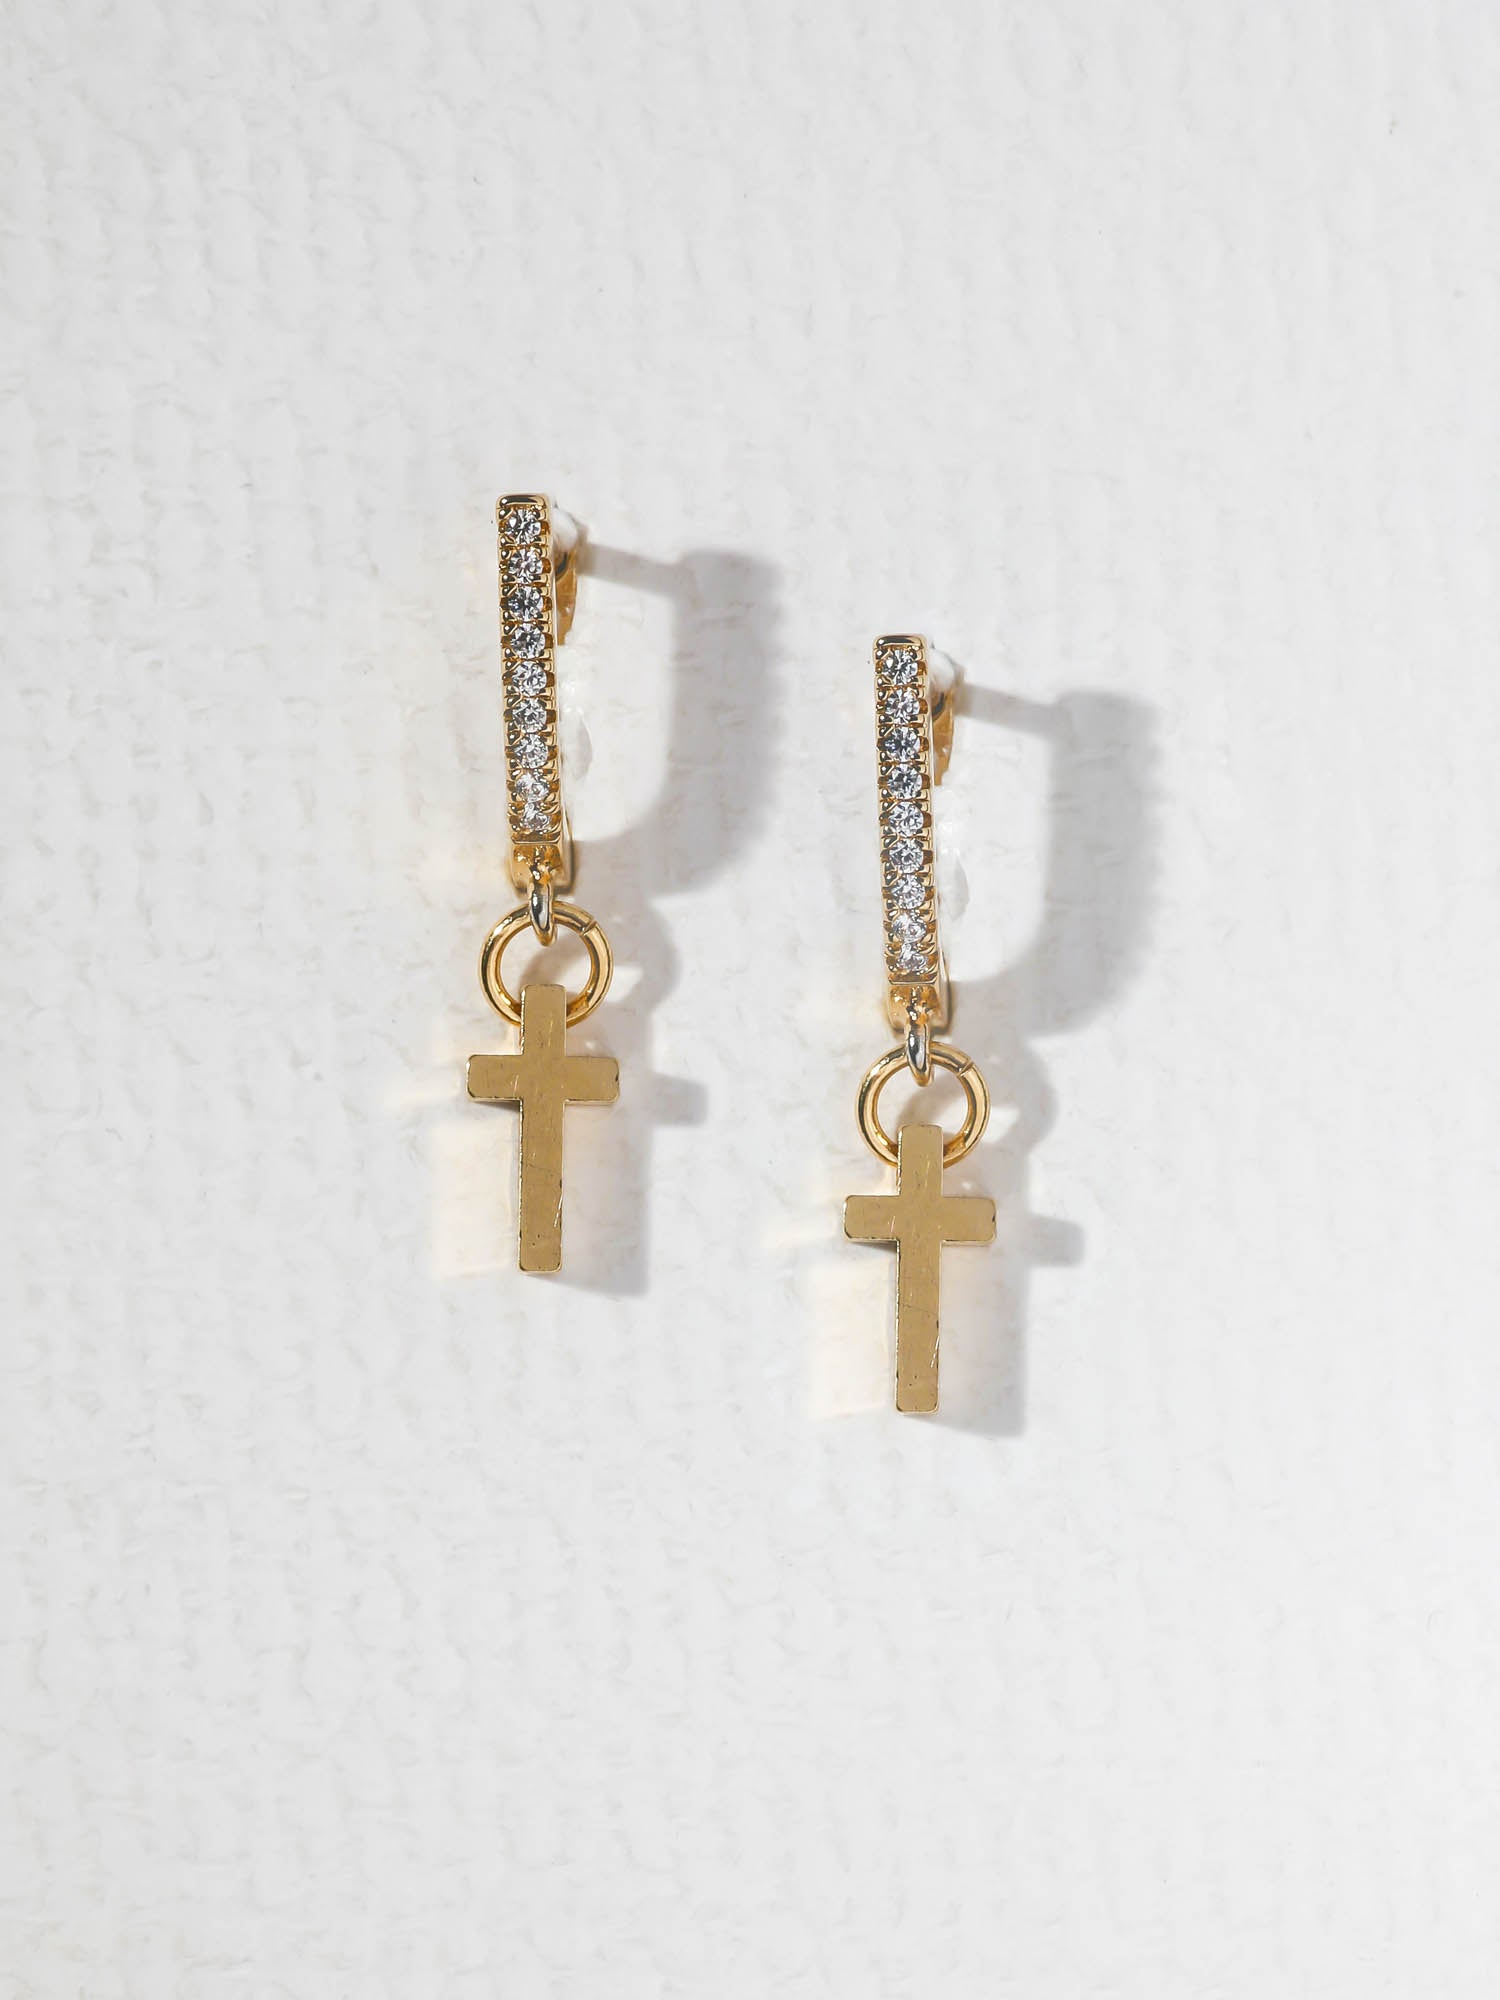 The Little Gold Cross Earrings